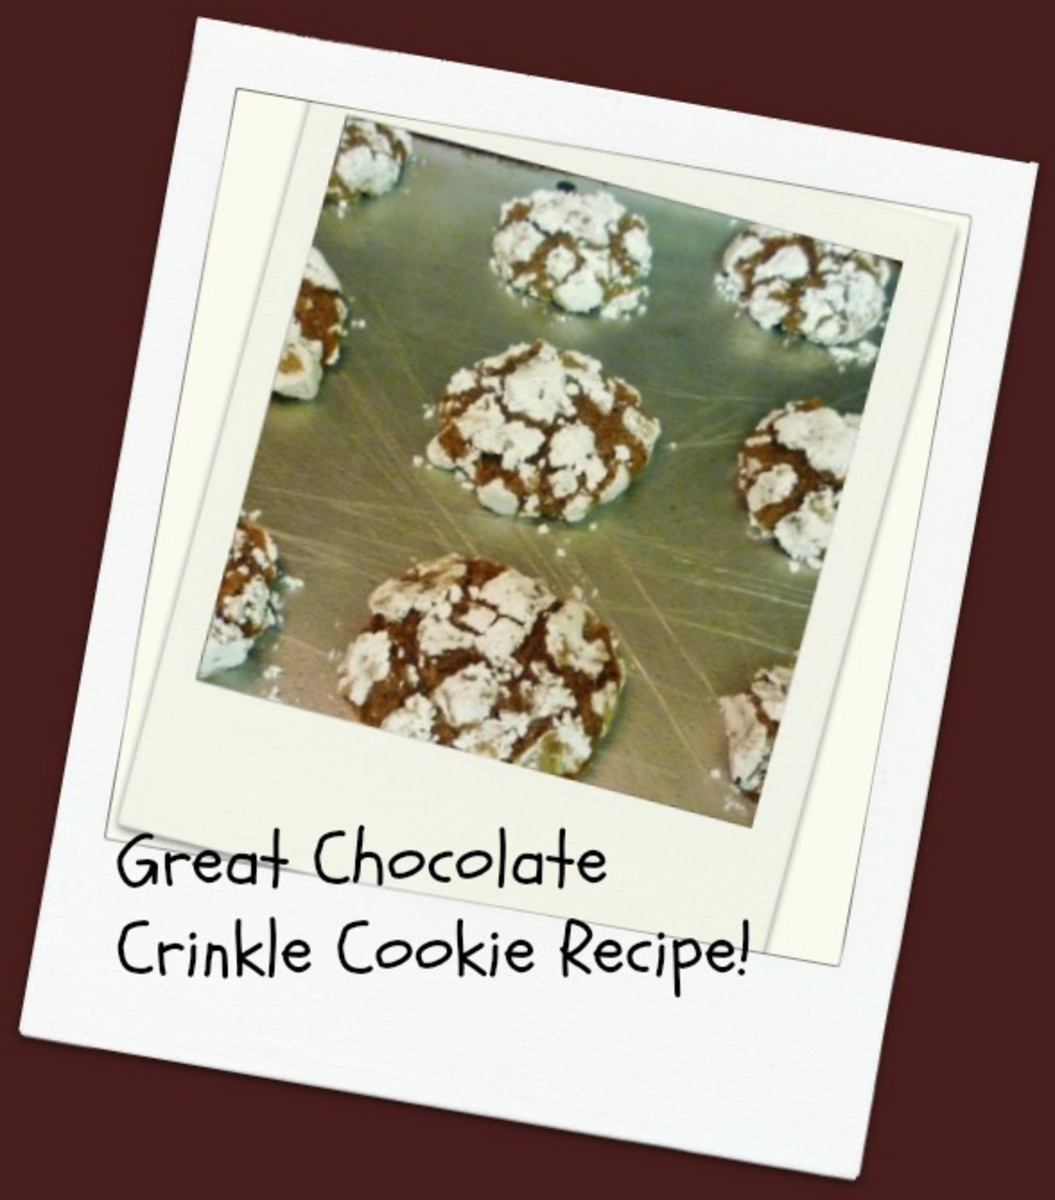 Step-By-Step Guide for Easy, Homemade Chocolate Crinkle Cookies